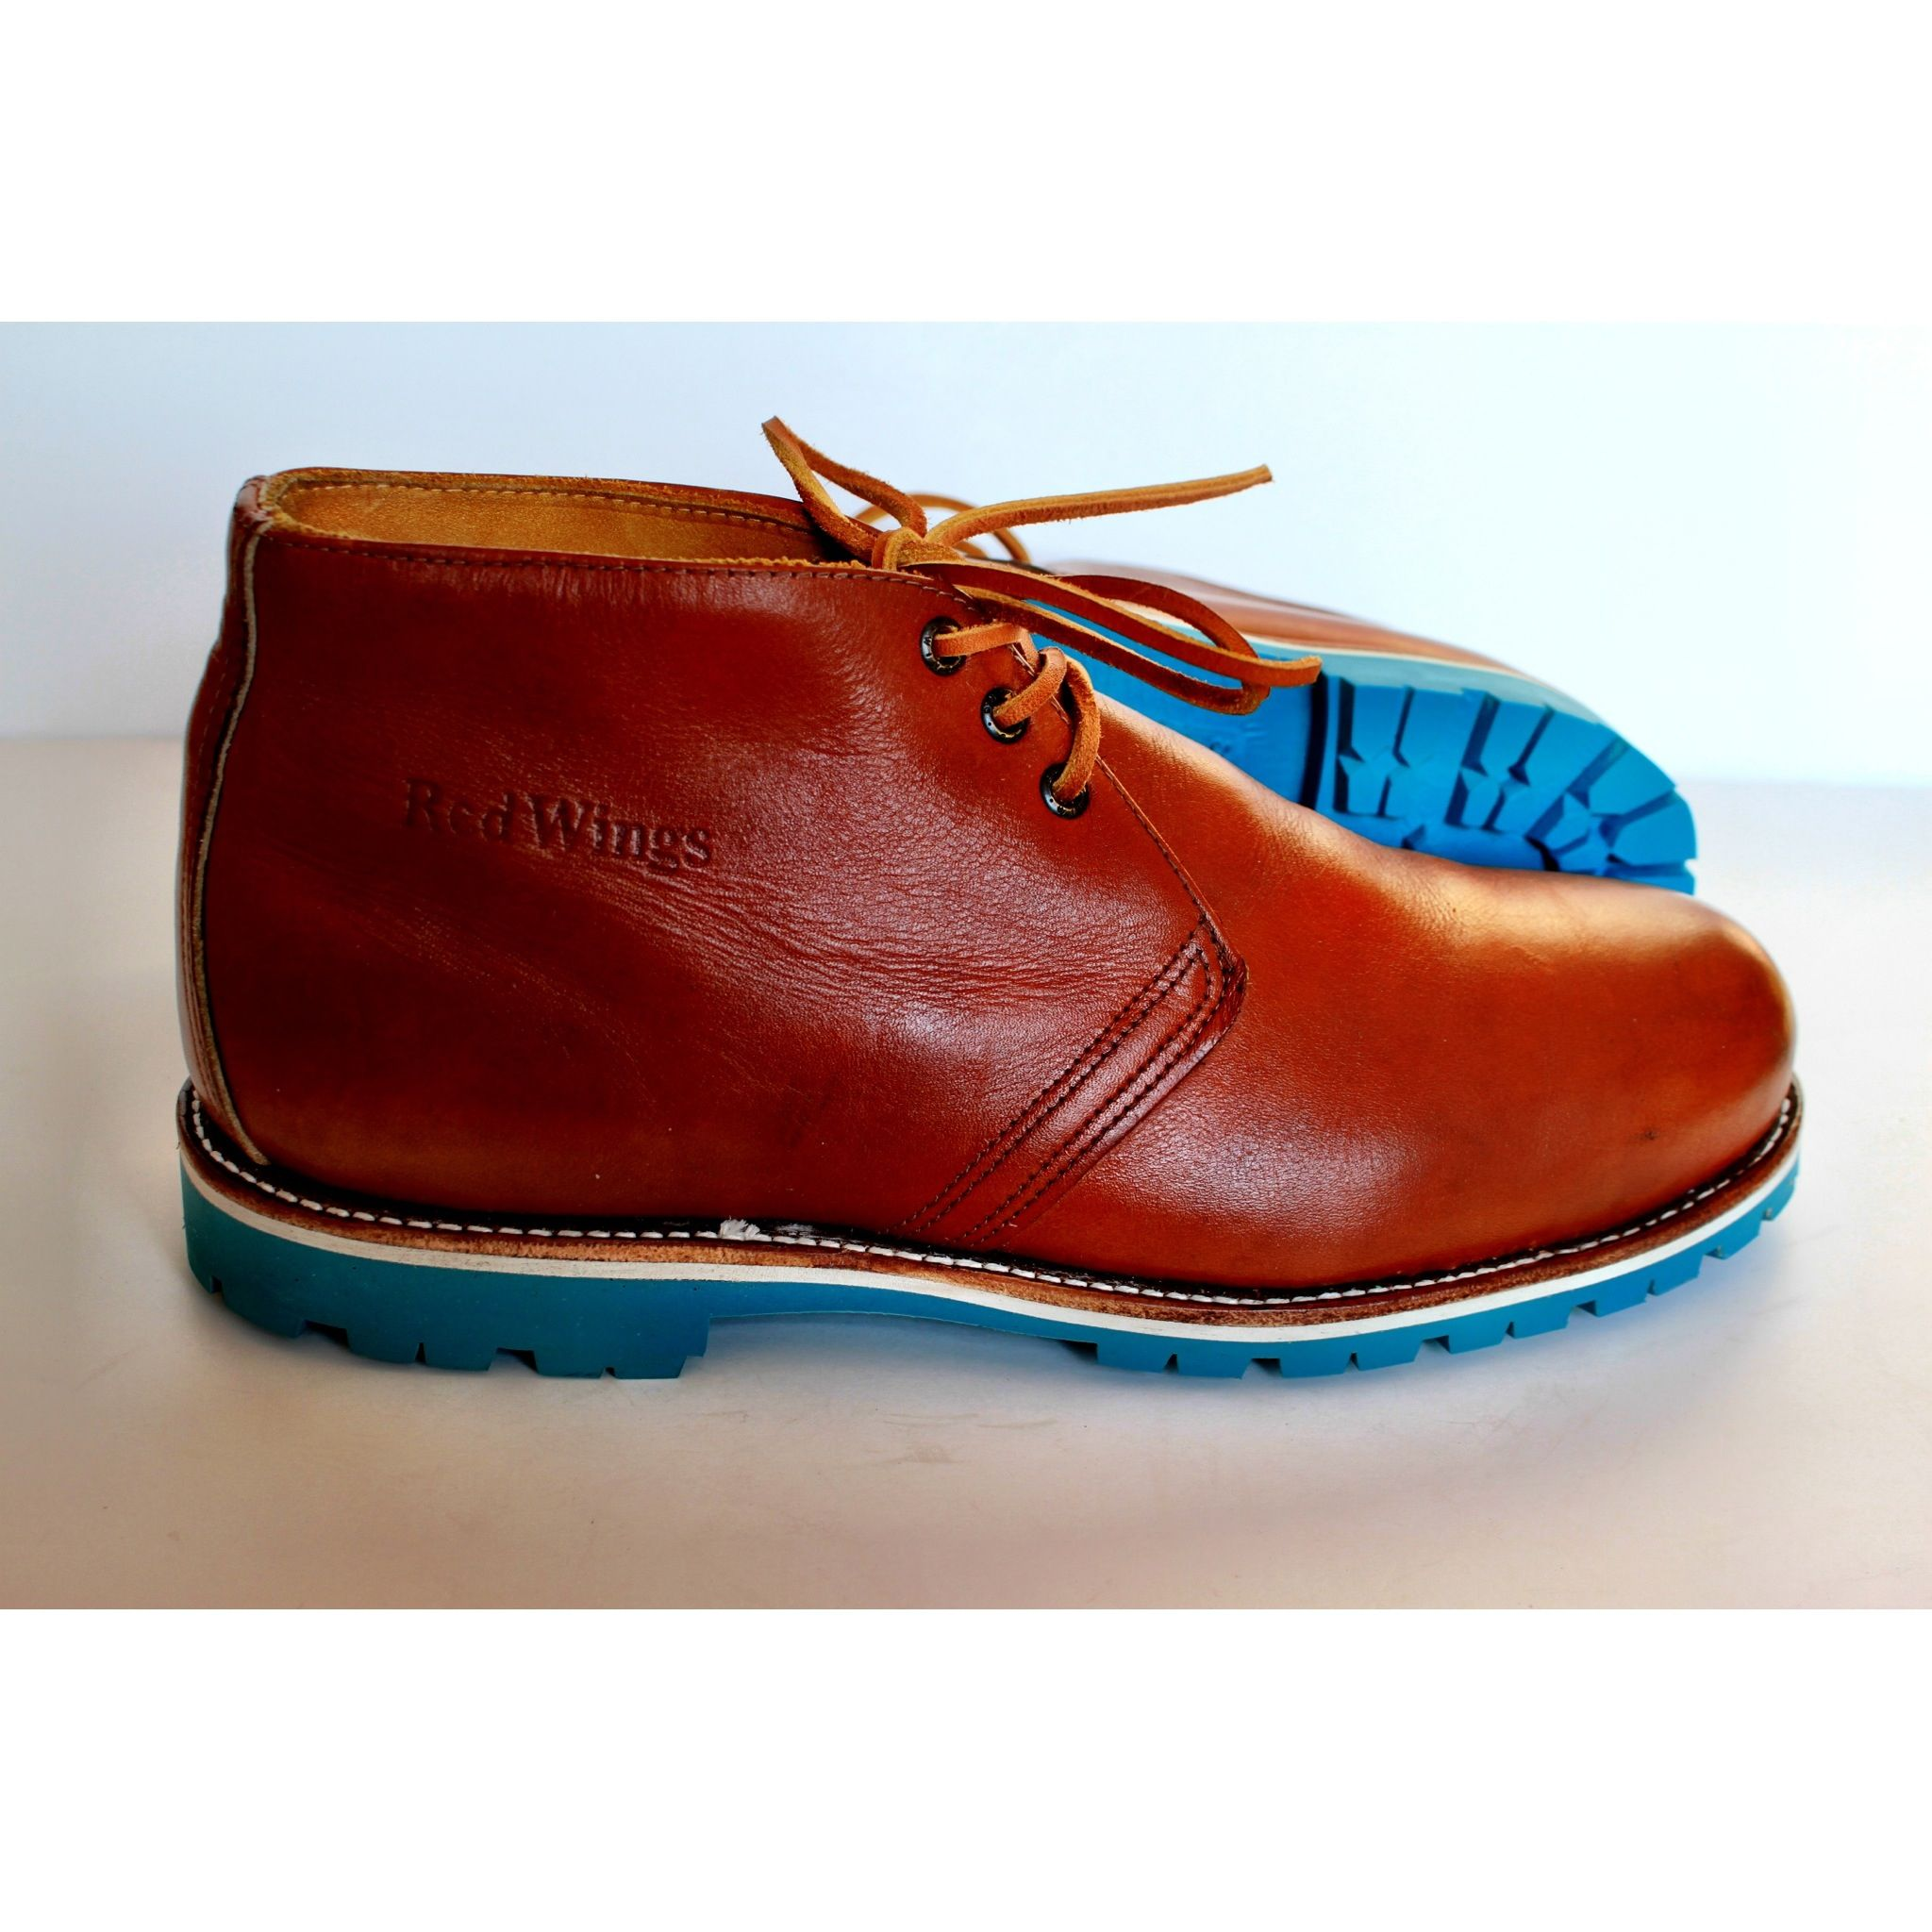 Vintage chukka boots from Red Wing